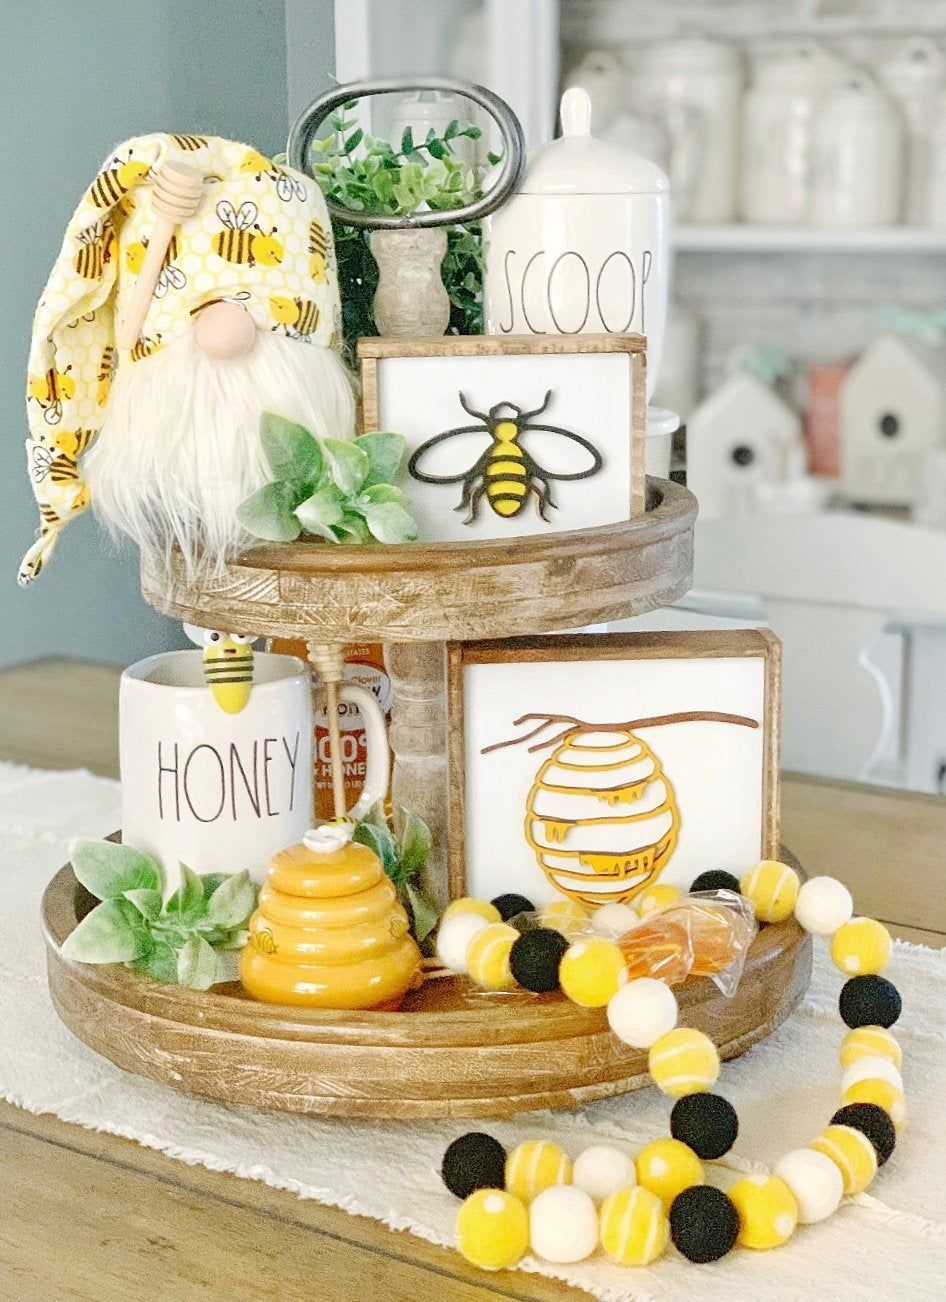 Bee signs / honey signs / bee decor / 3D signs / summer signs | Etsy